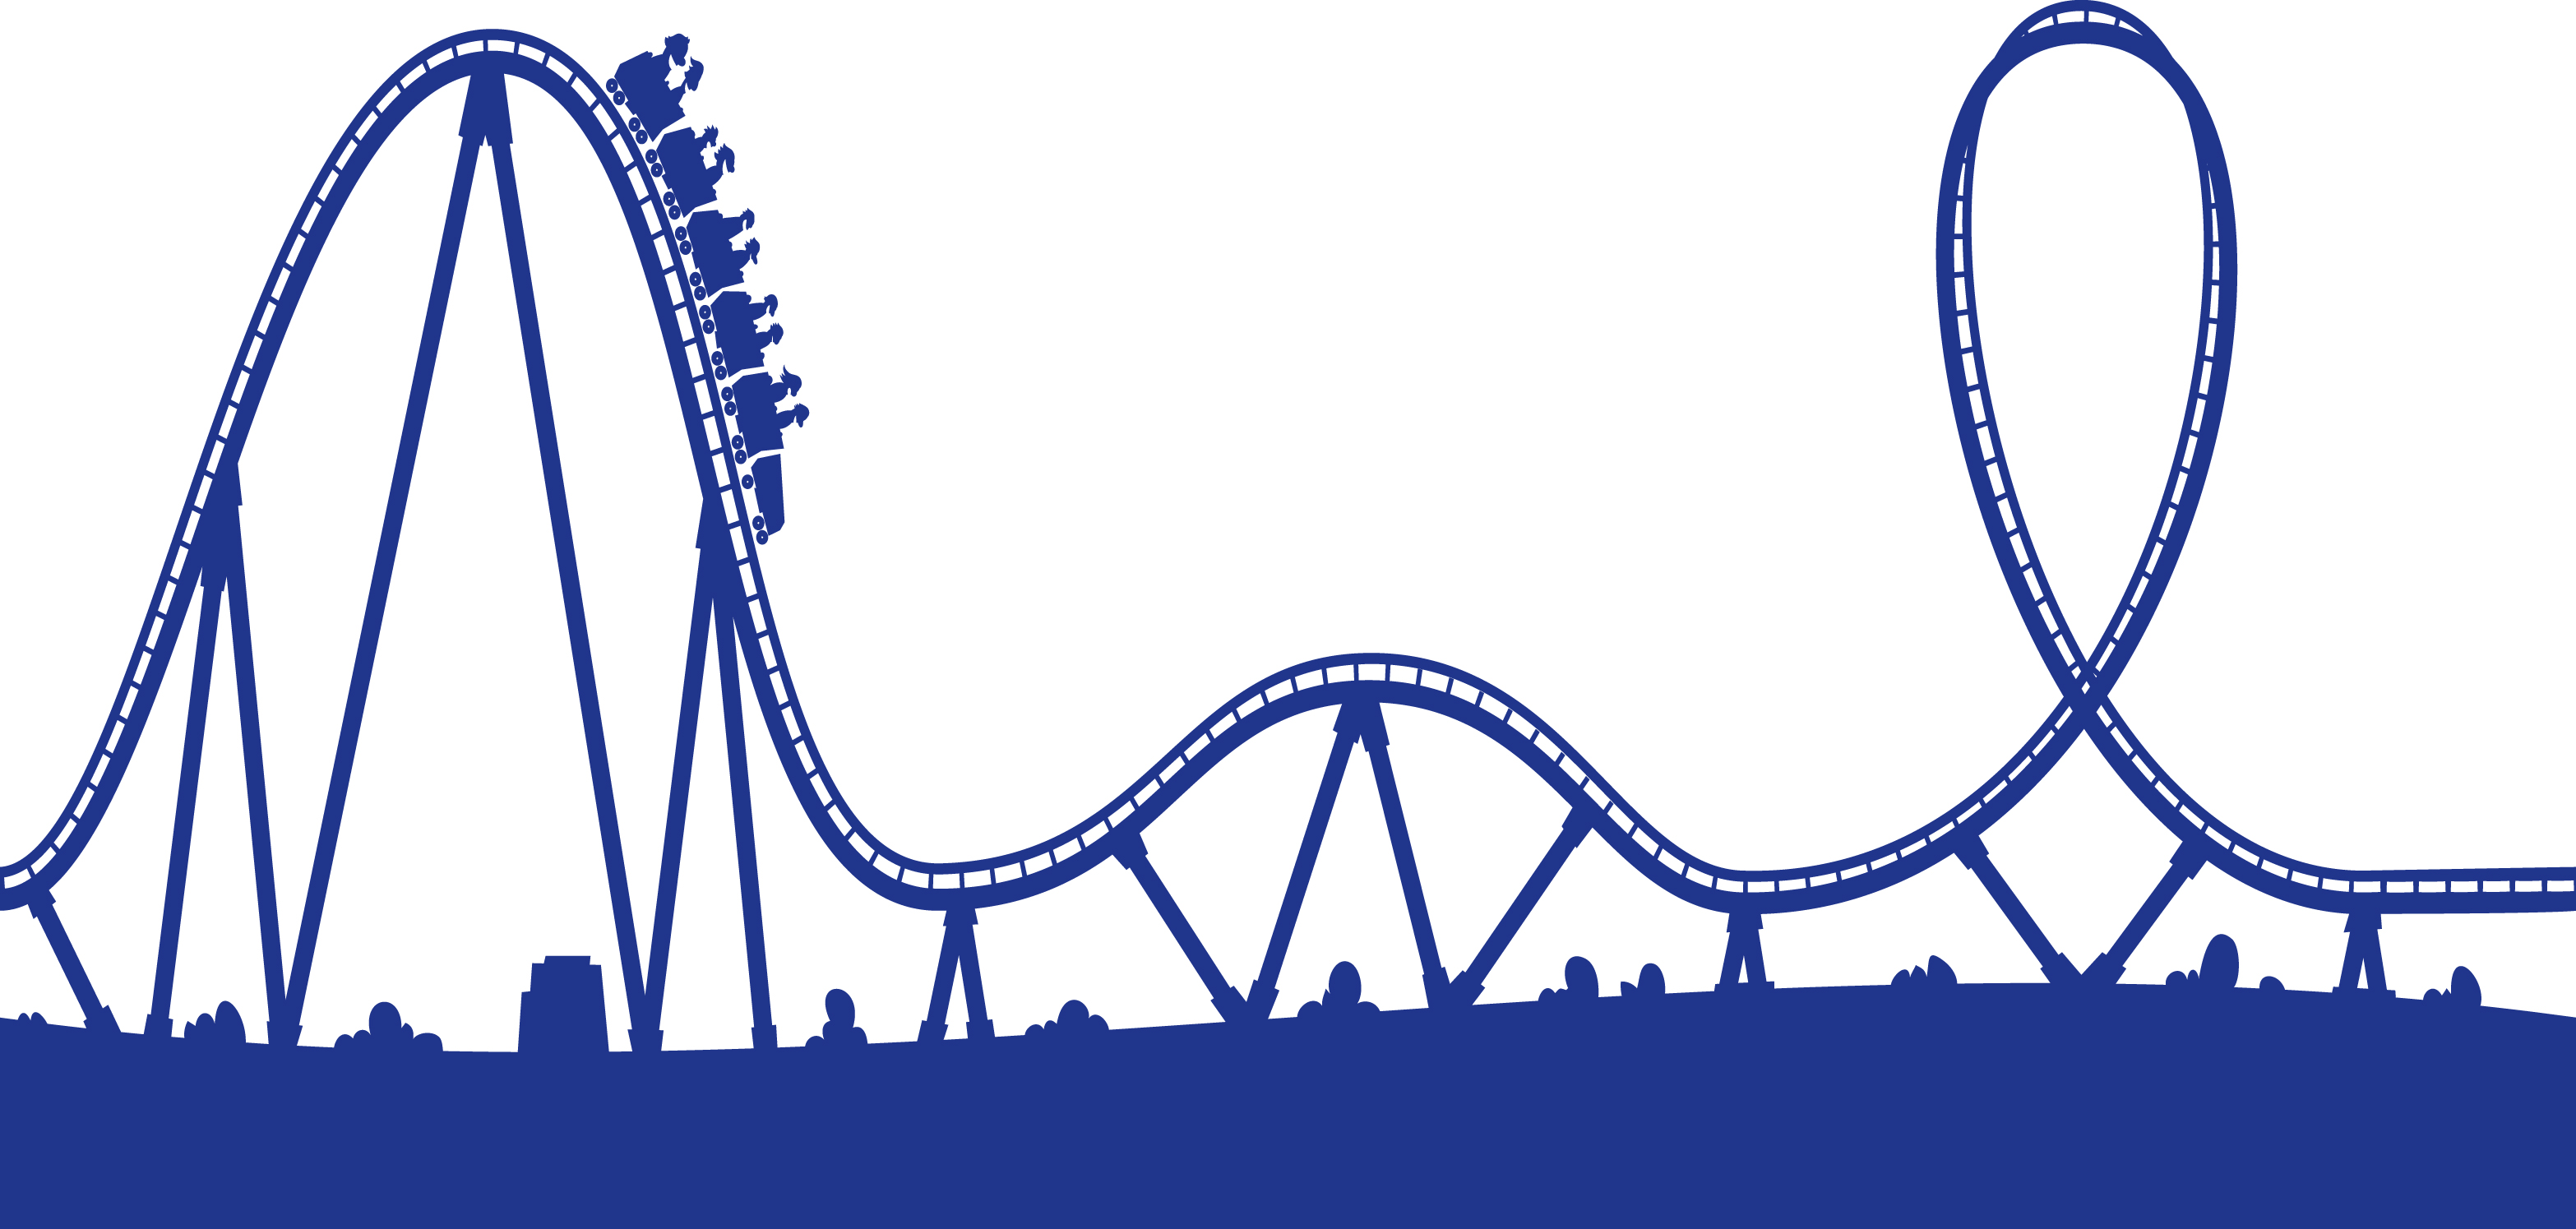 Animated roller coaster clipart free